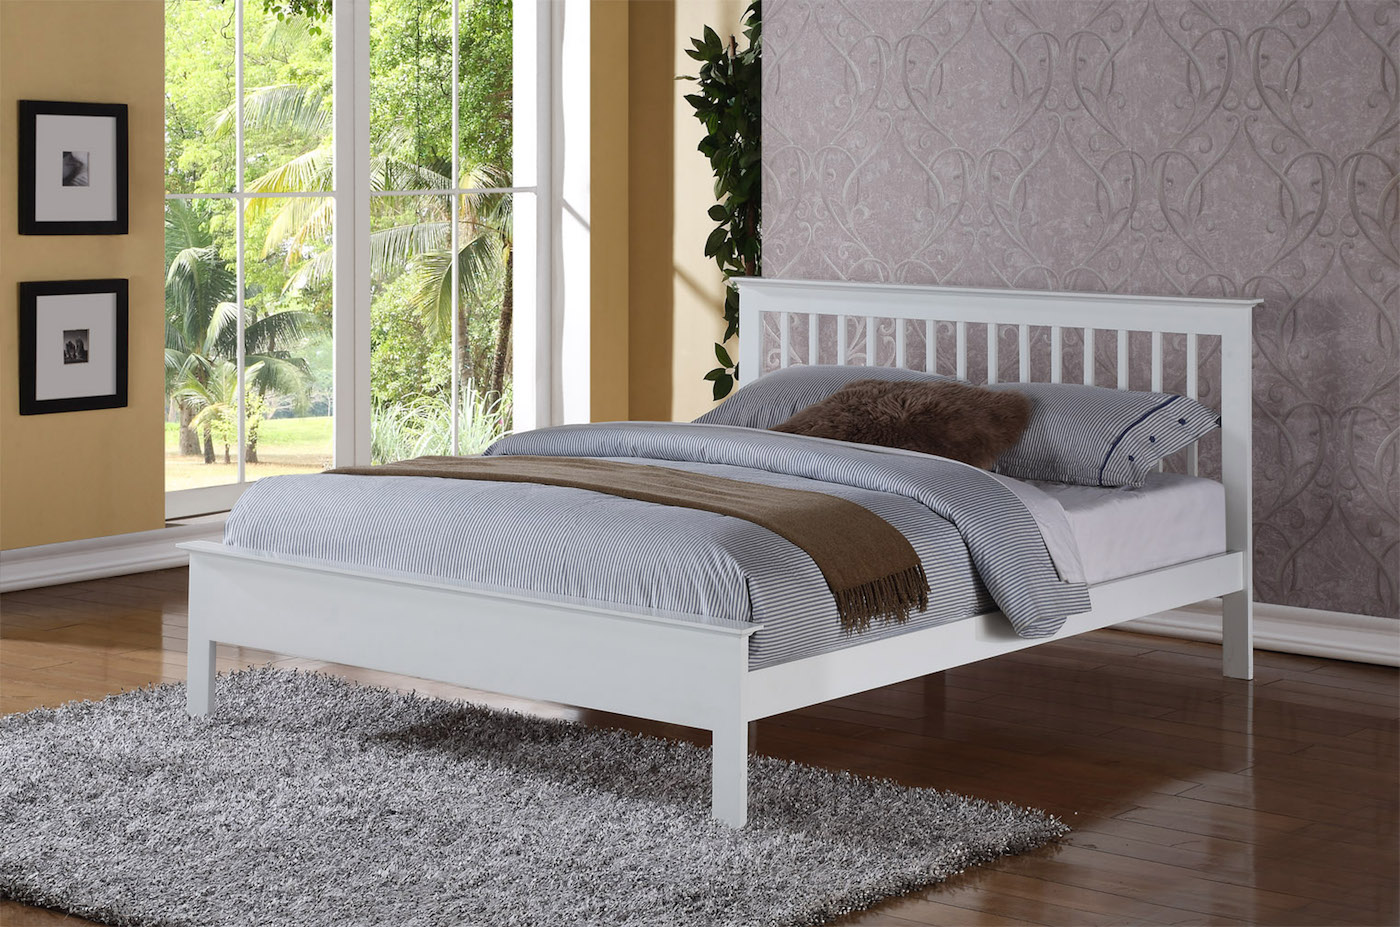 Flintshire Pentre bed White Finish